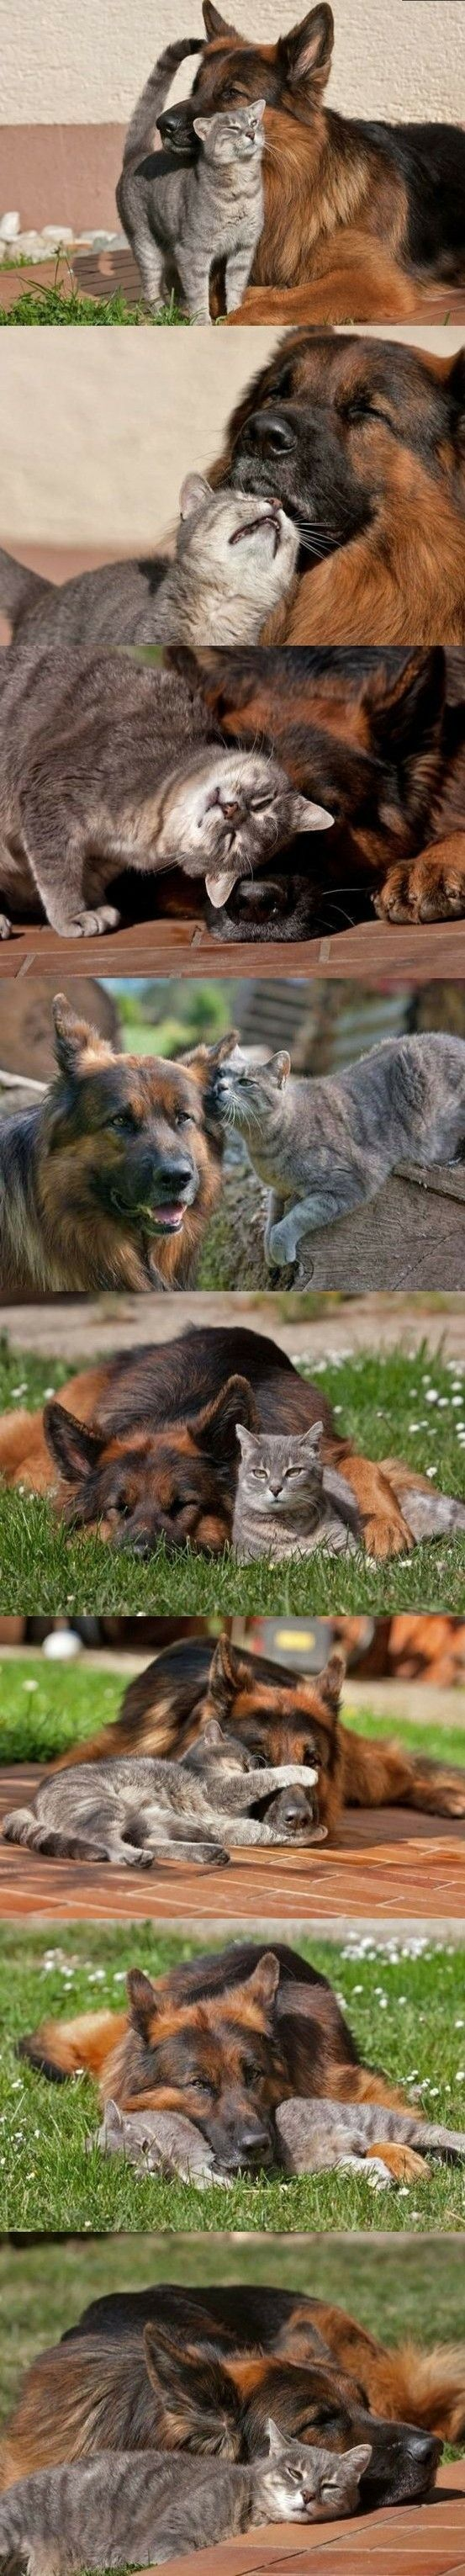 "Oh yeah, ""fighting like cats and dogs."" I can see why that's such a common phrase. #BFF"